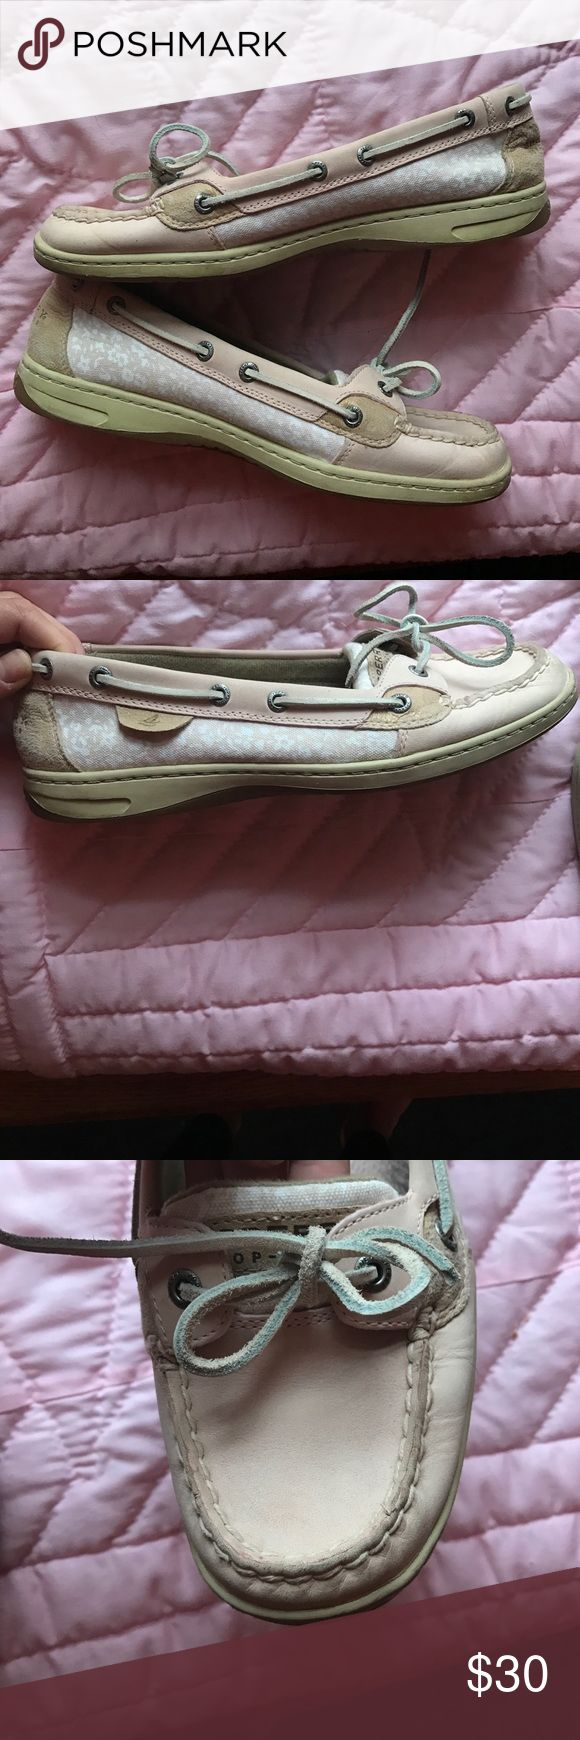 Super cute, baby pink sperrys! Slightly worn, baby pink Sperry Top-Siders! Flower detailing on the sides! Worn under 5 times! Super comfy! Sperry Top-Sider Shoes Flats & Loafers